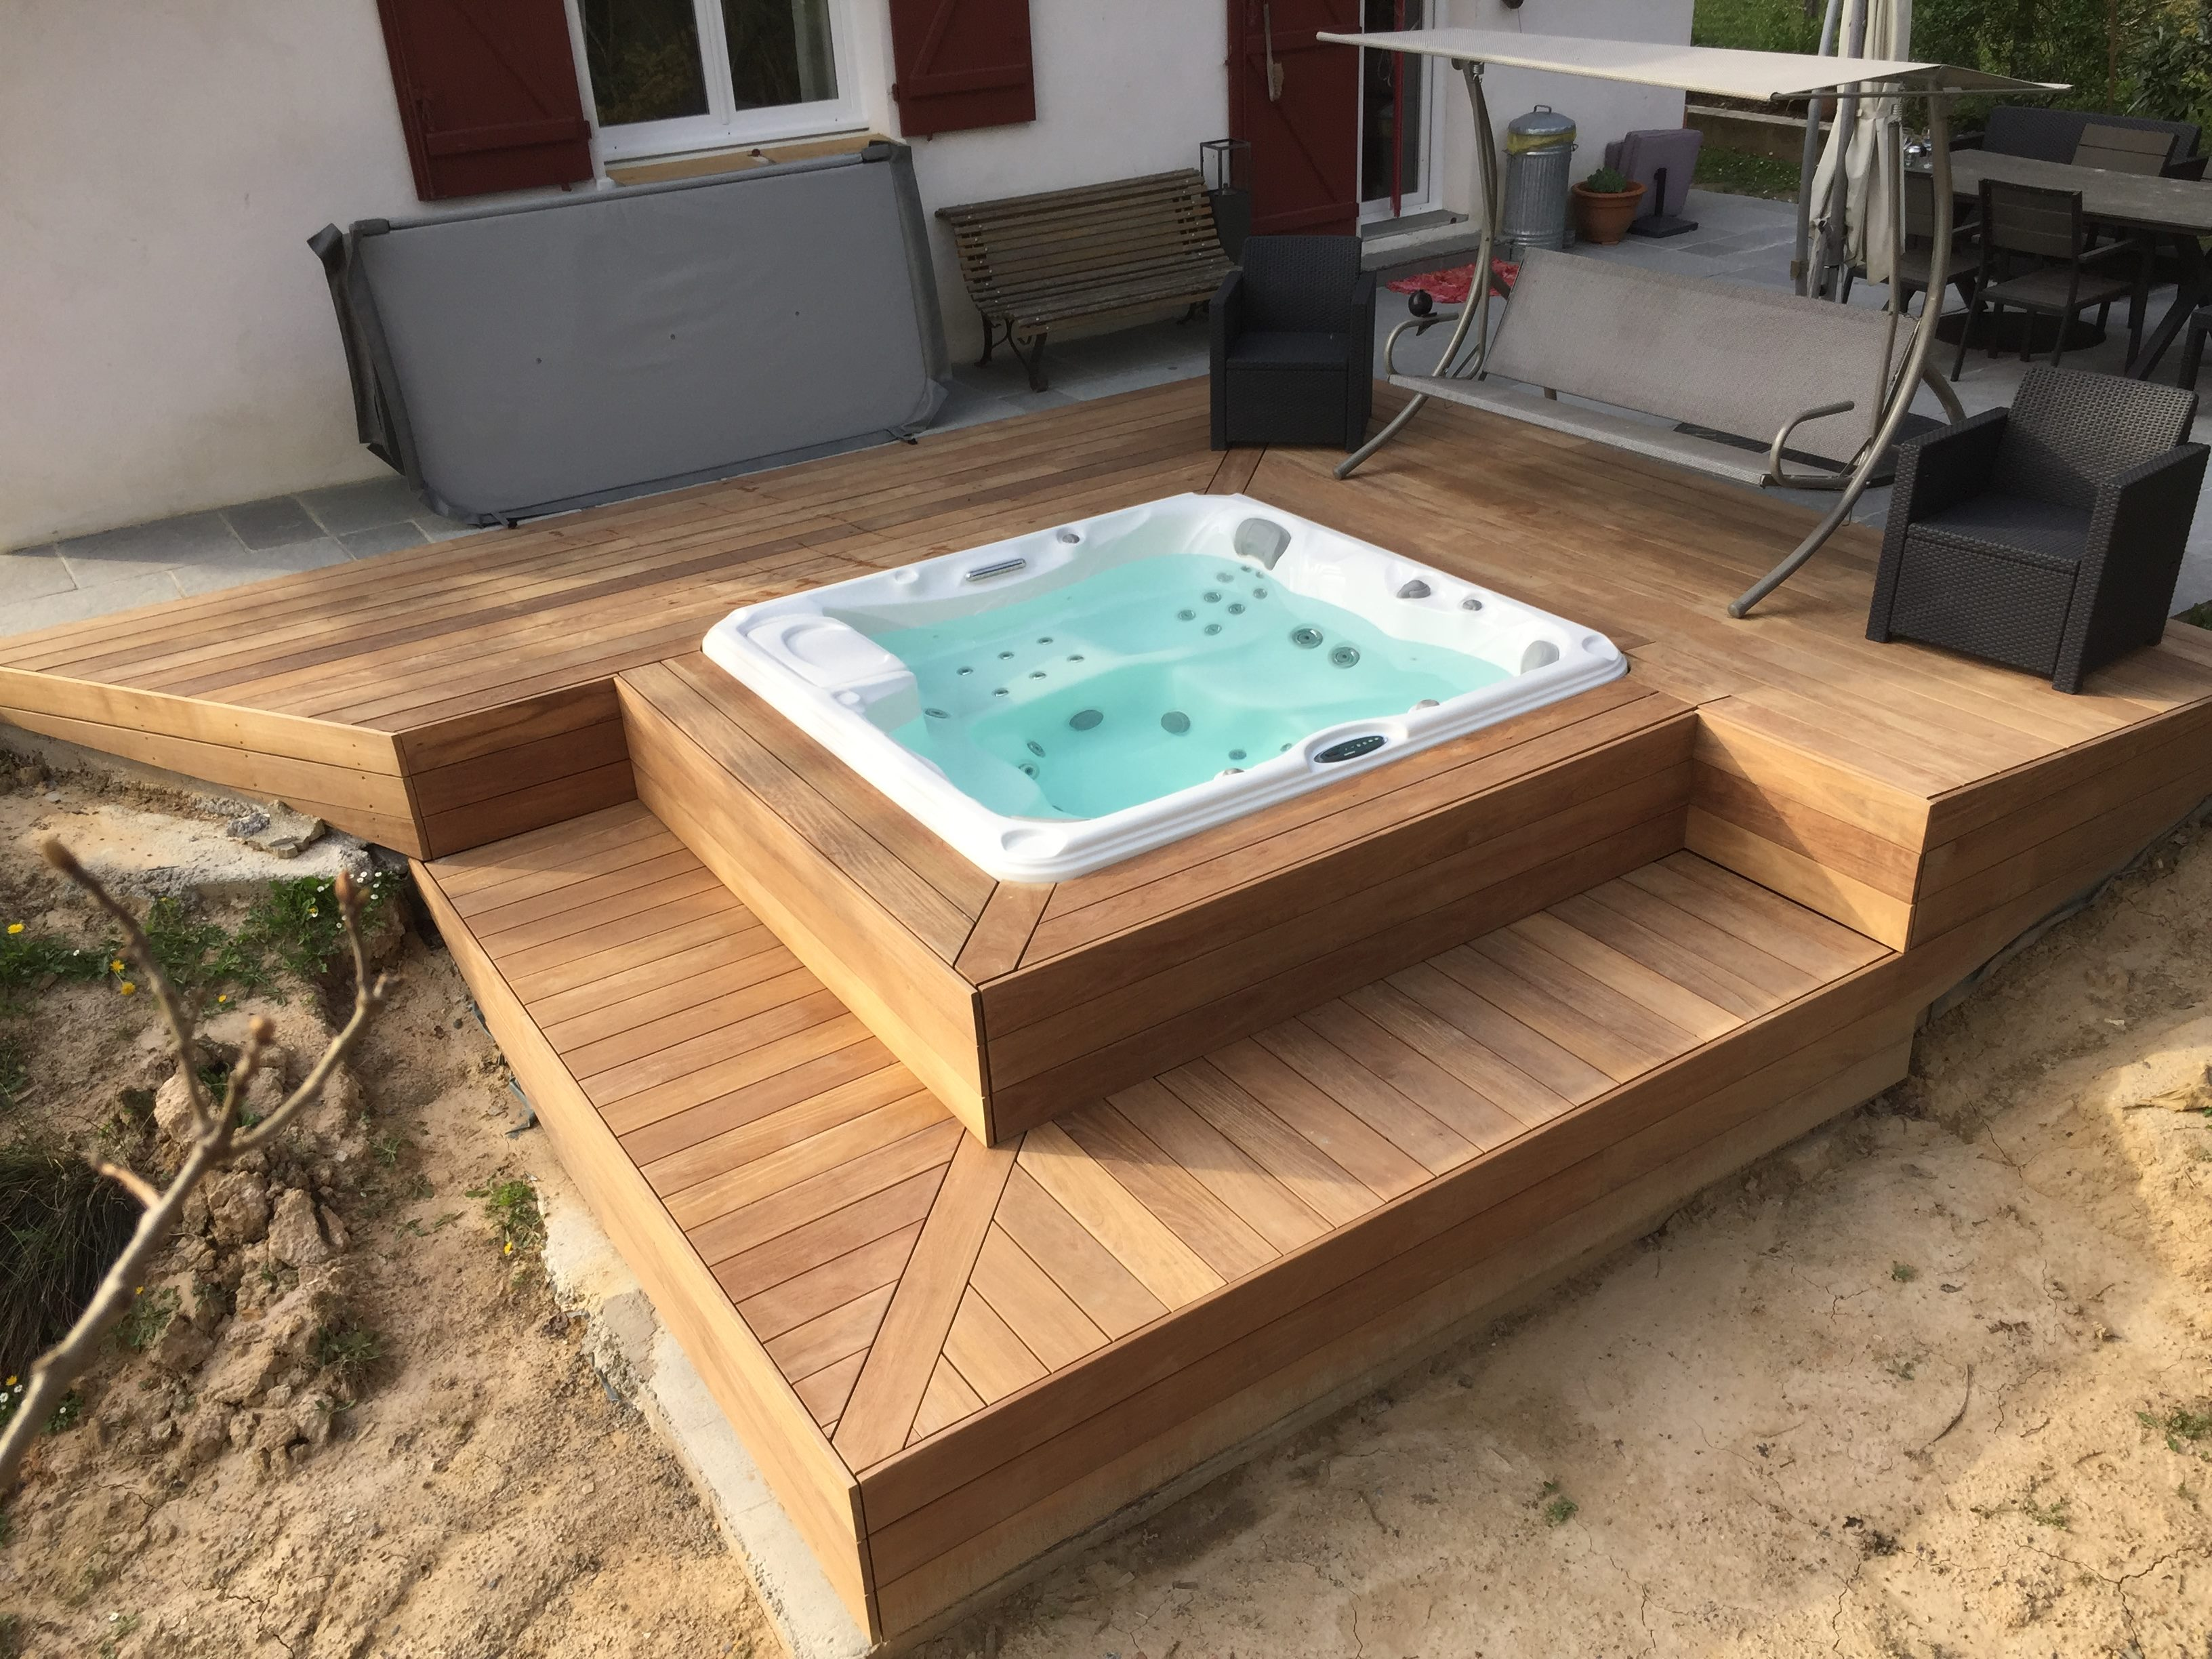 jacuzzi en bois exterieur pour terrasse latest spa en bois bain nordique jacuzzi en bois ext. Black Bedroom Furniture Sets. Home Design Ideas